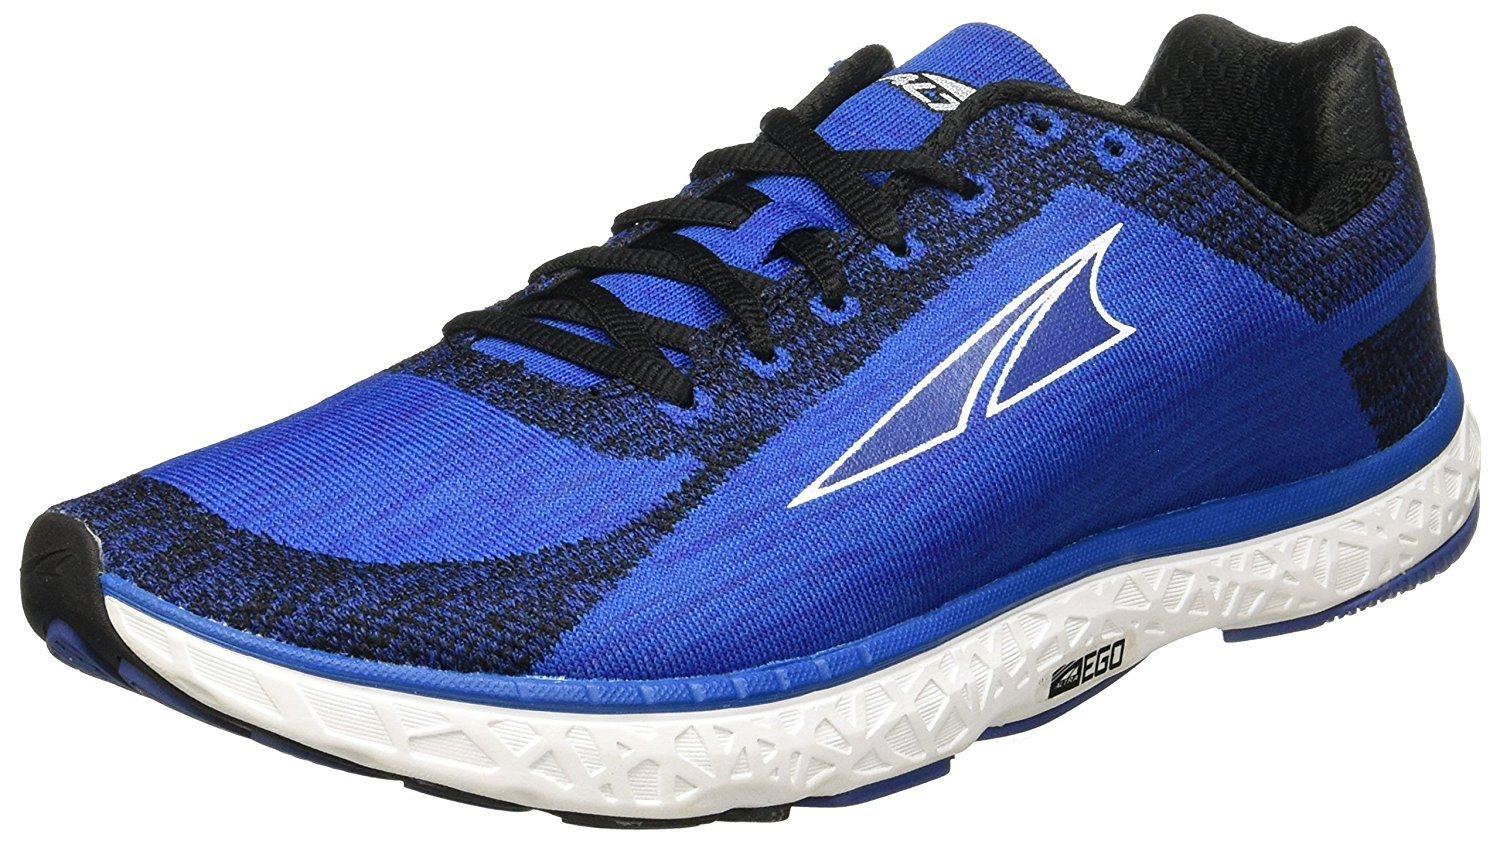 Altra AFM1733G Men's Escalante Running Shoe, Blue - 10.5 D(M) US by Altra